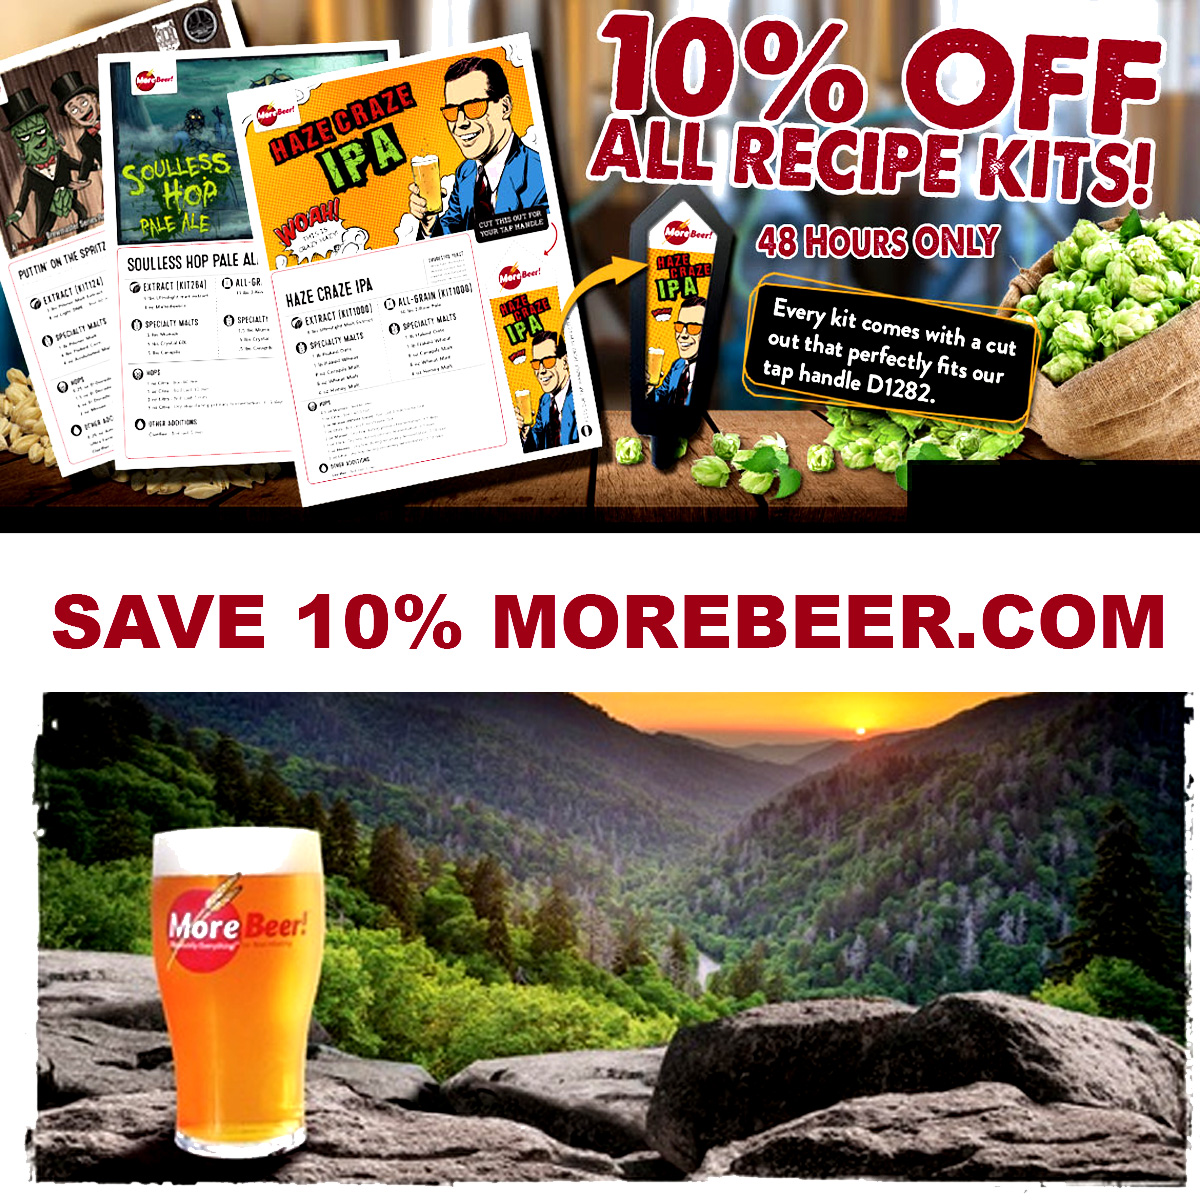 MoreBeer Save 10% On Home Brewing Beer Kits at Morebeer.com With More Beer Pormo Code Coupon Code